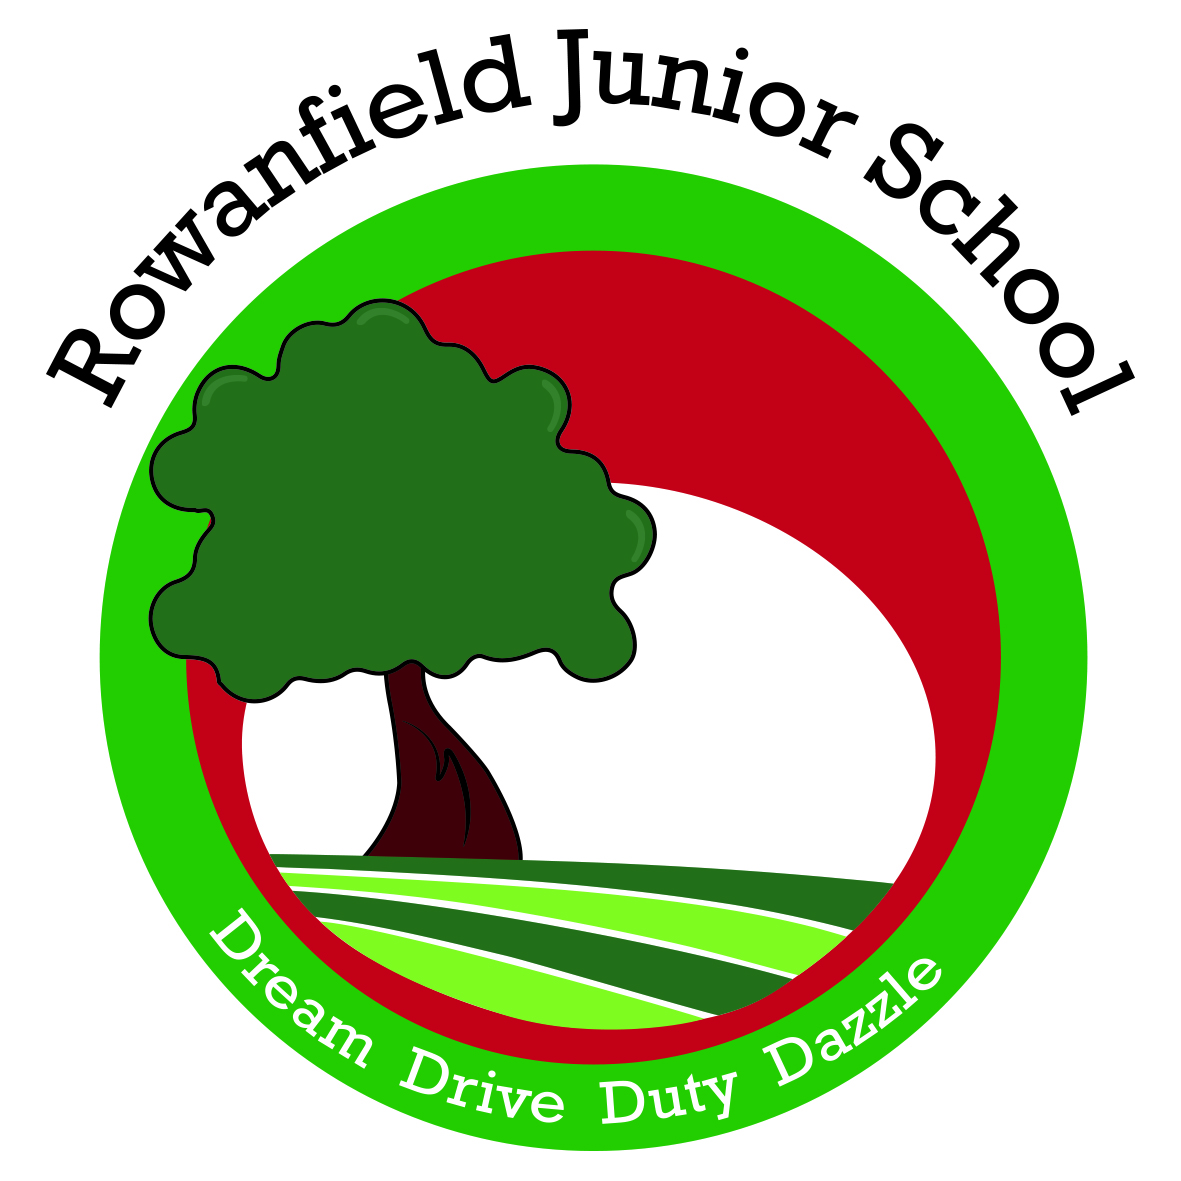 ROWANFIELD JUNIOR SCHOOL LOGO